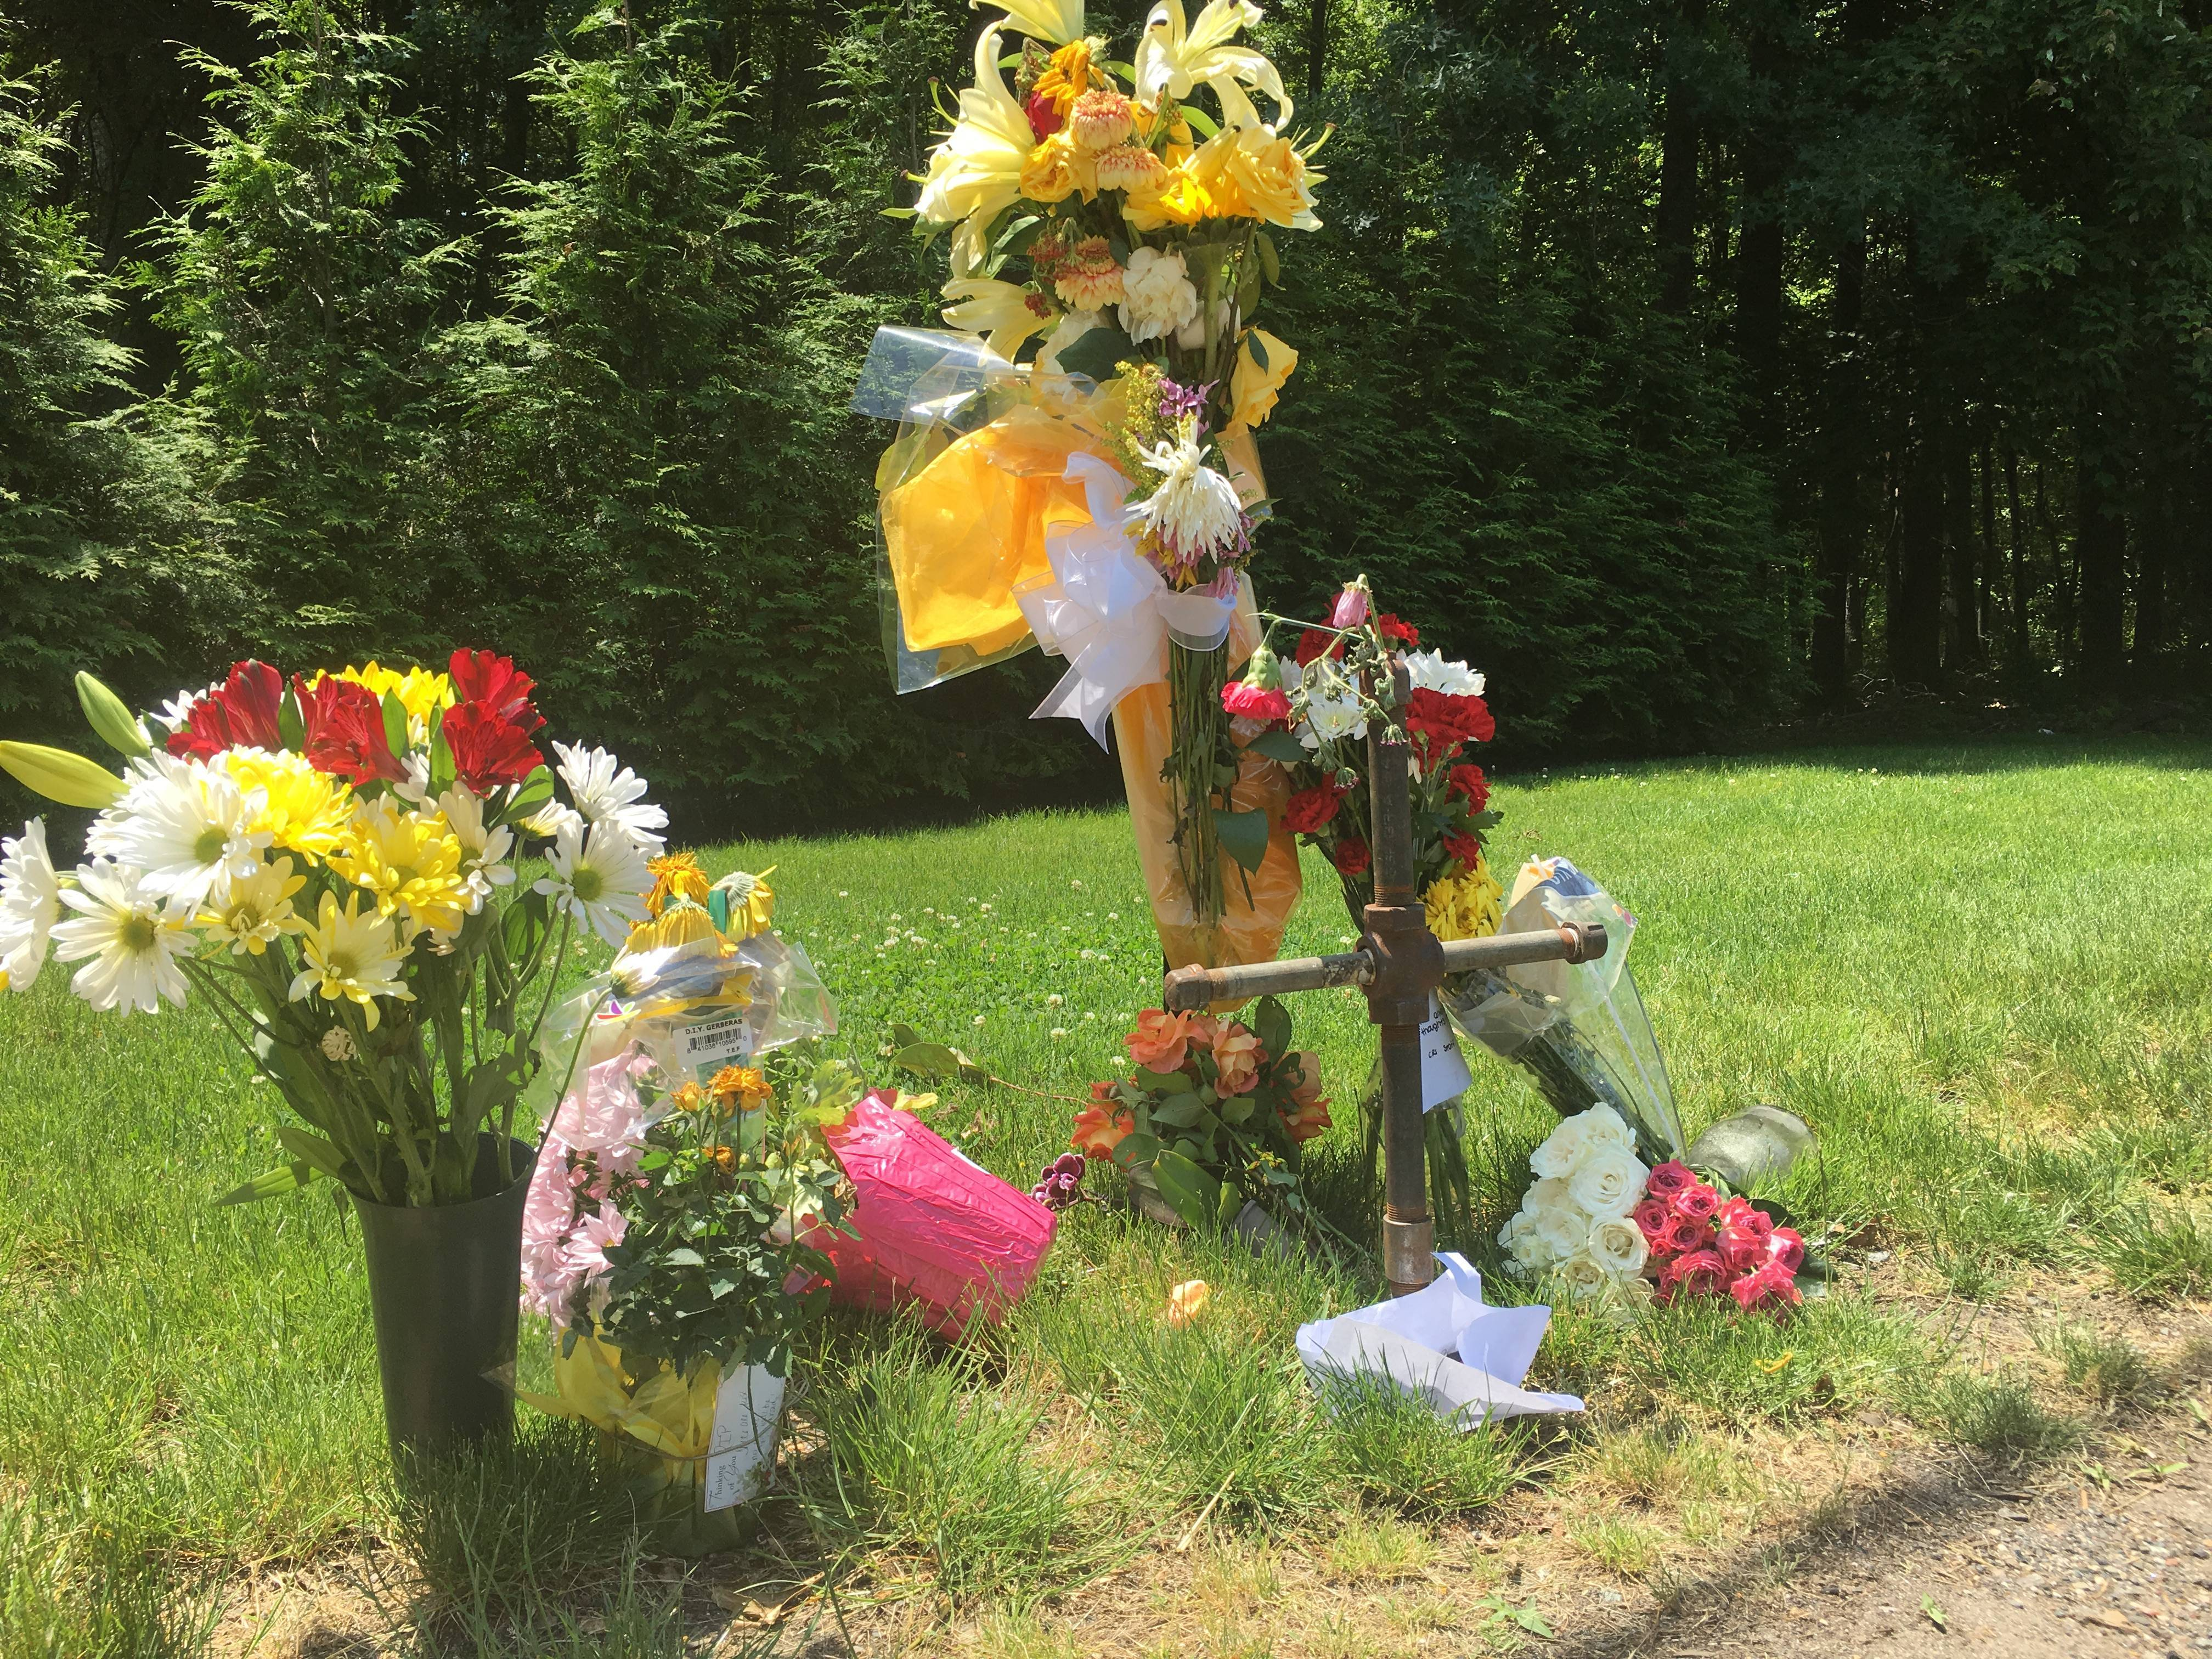 gofundme campaign seeks to raise money for guidetti family